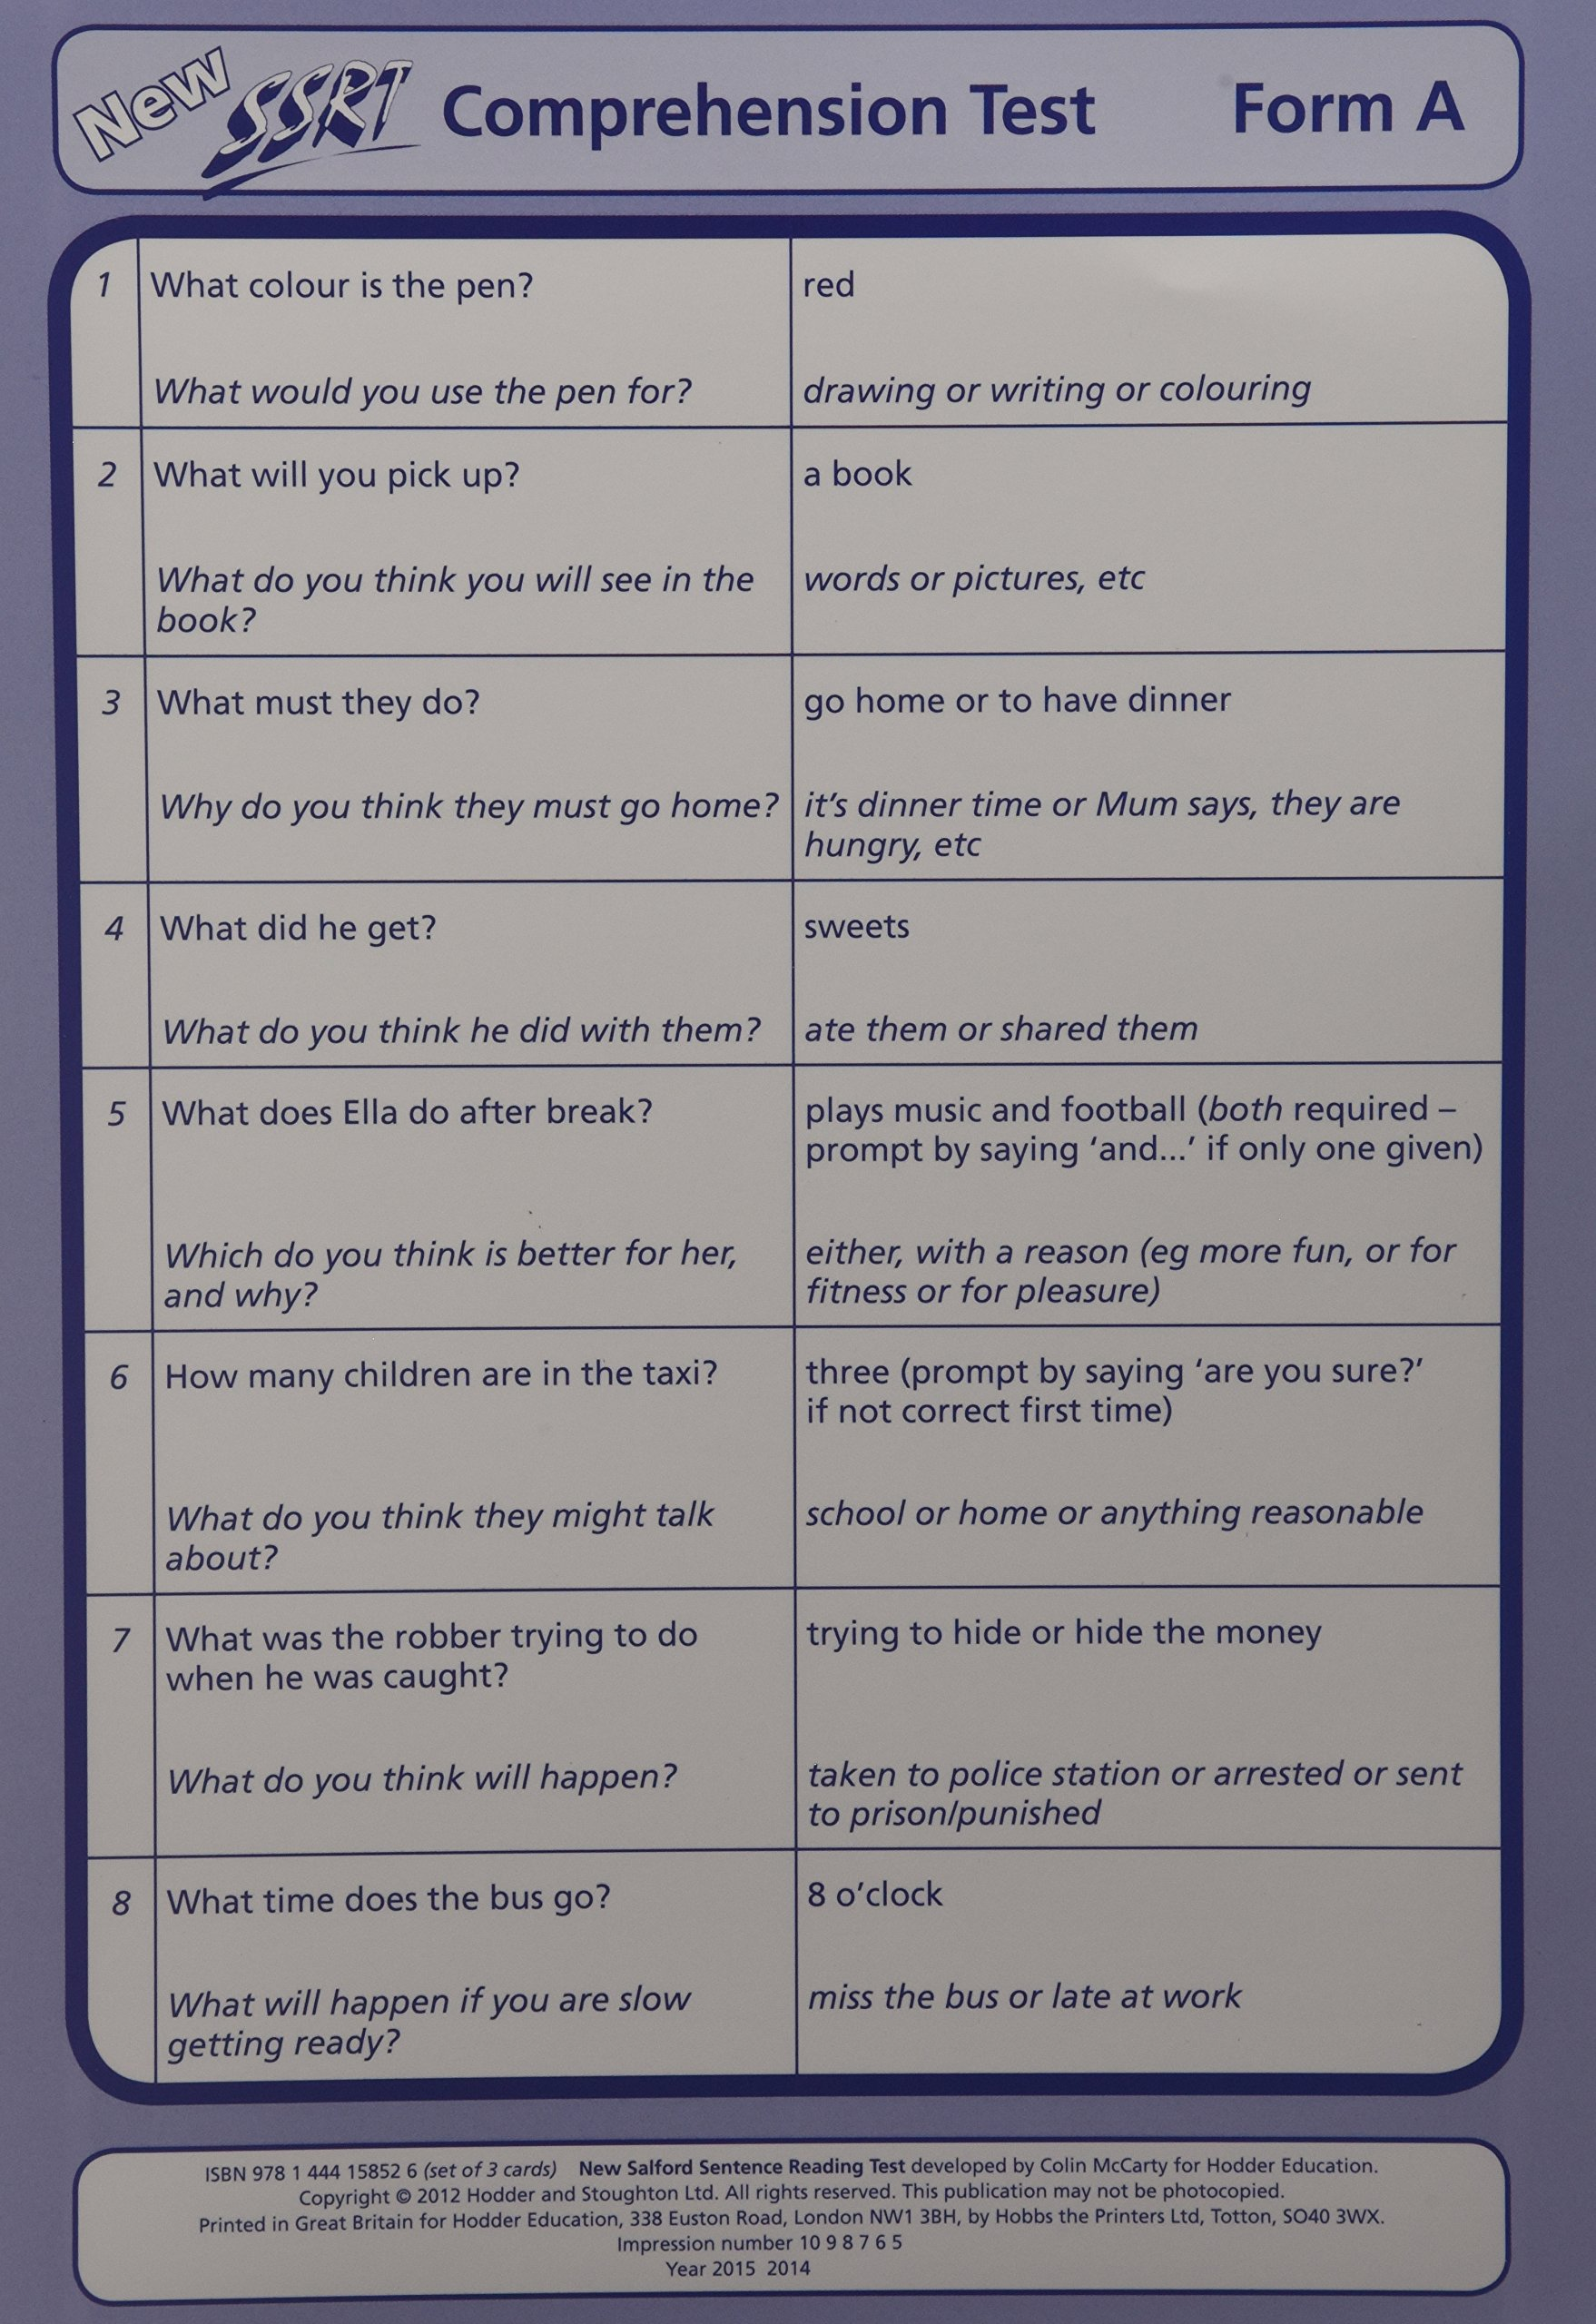 - New Salford Sentence Reading Test: Pk. 3: Comprehension Cards A, B